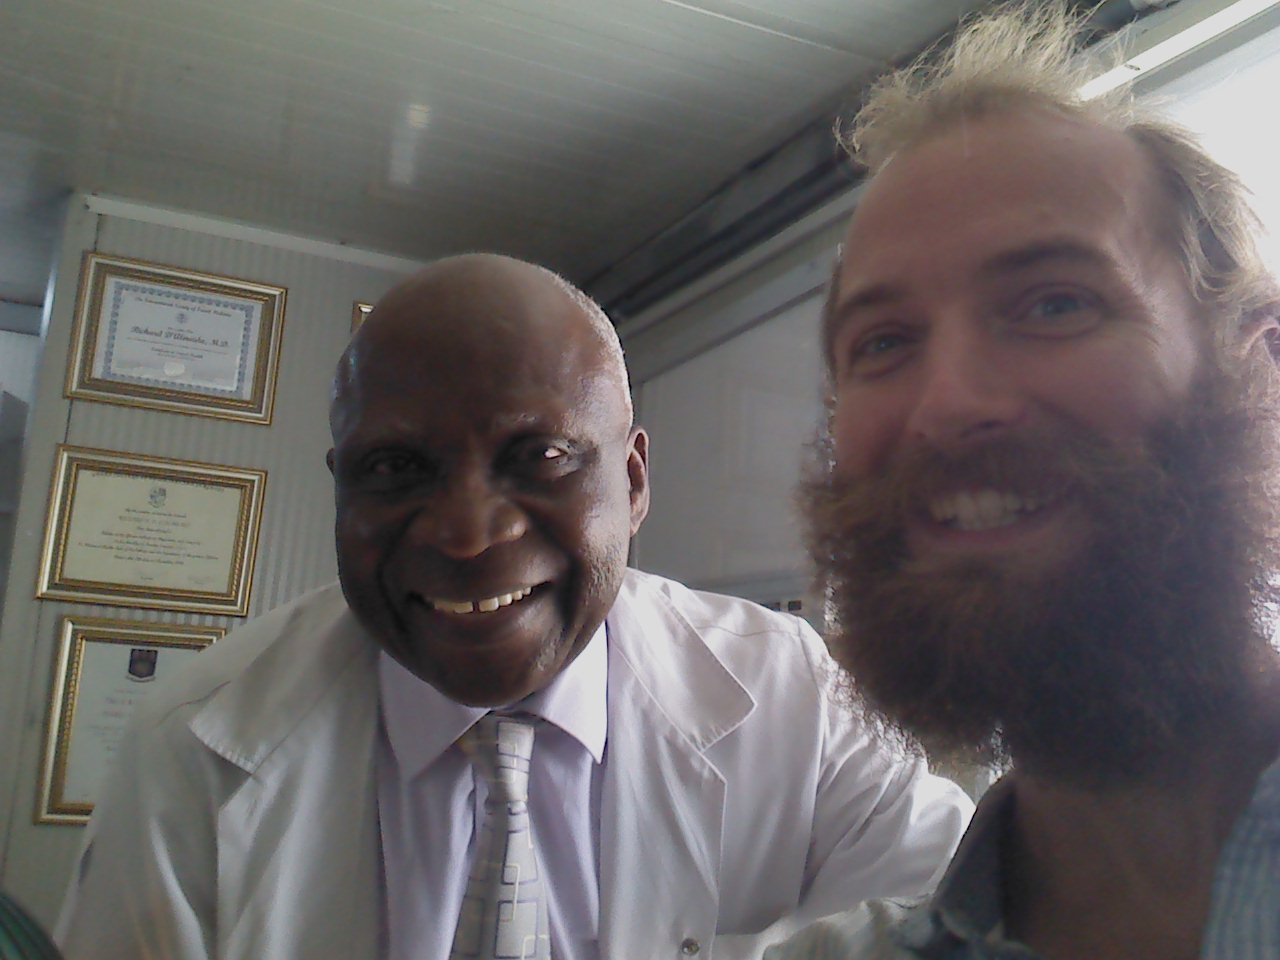 Dr Ricard (left) and myself (right) after vaccination in Accra, Ghana.